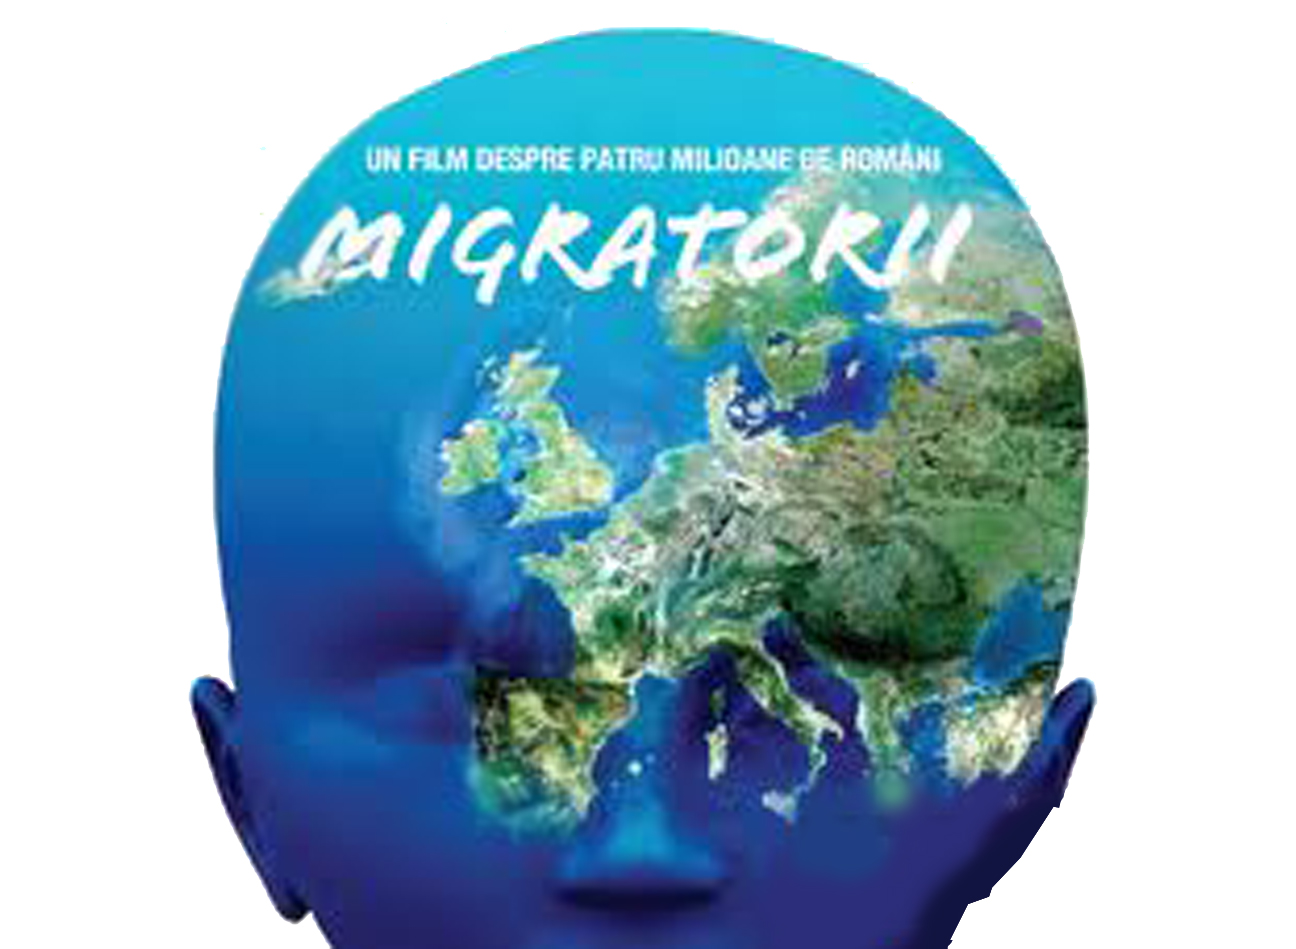 migratorii-blog.jpg